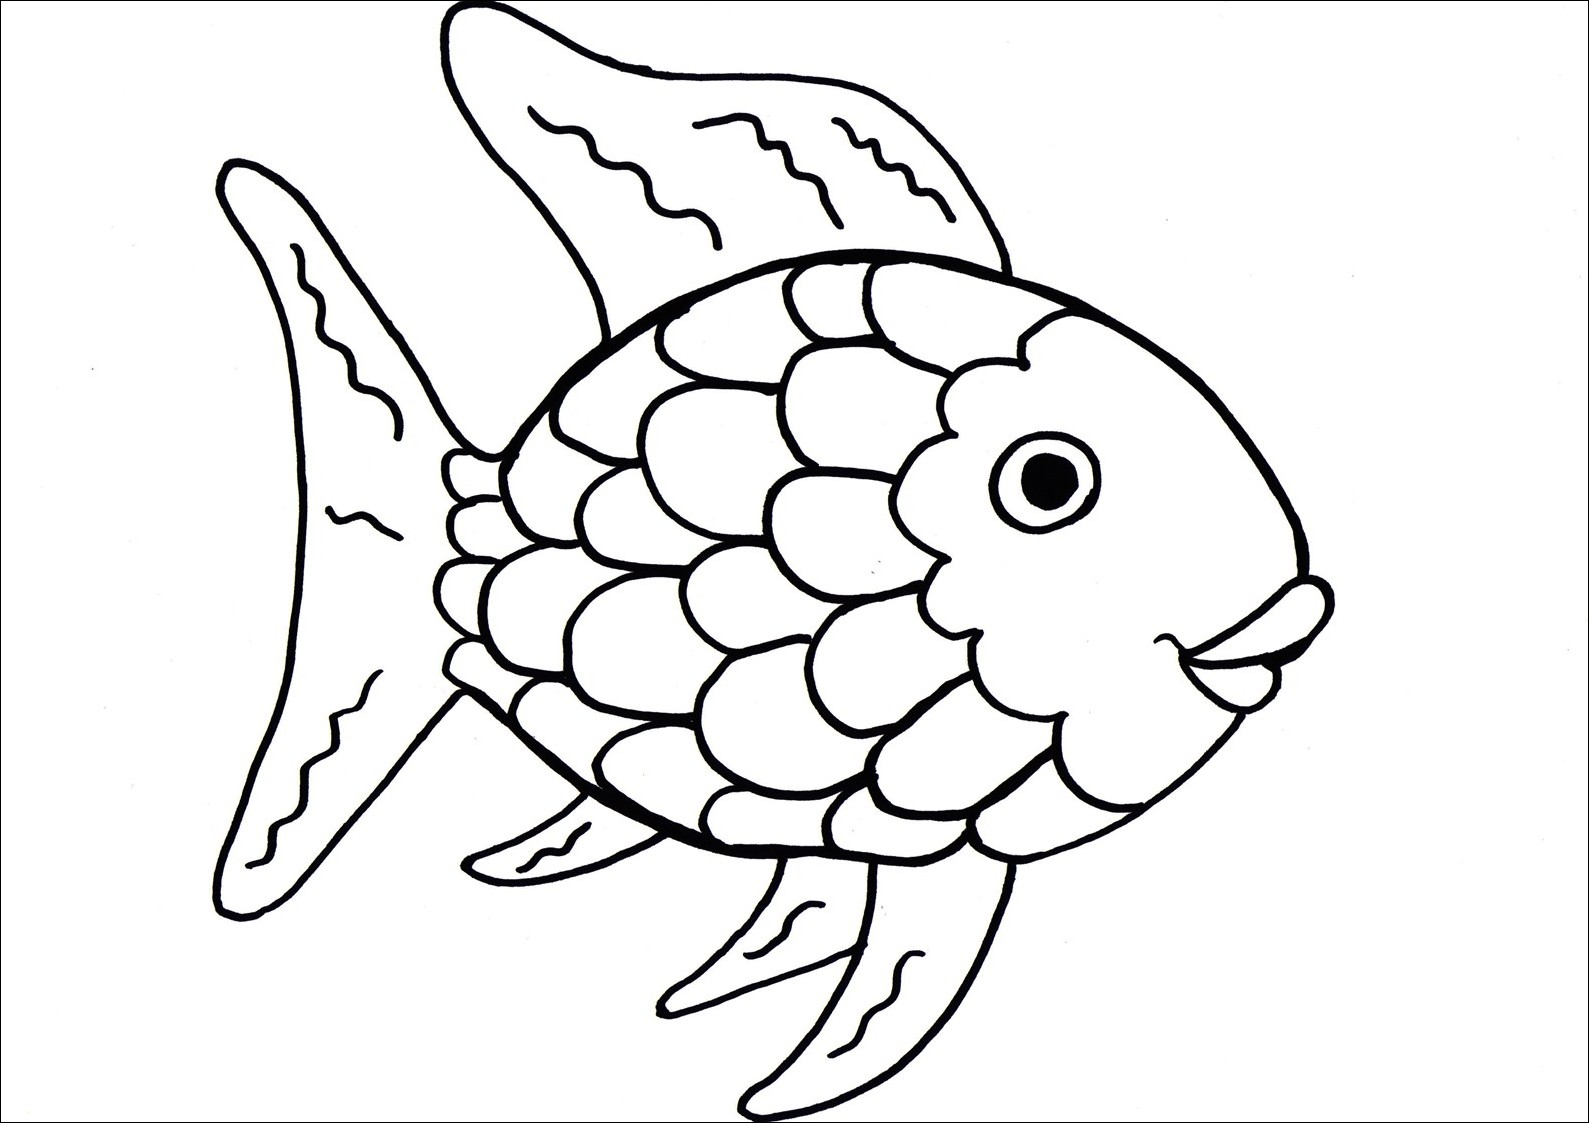 Free Rainbow Fish Outline Download Free Clip Art Free Clip Art On Clipart Library